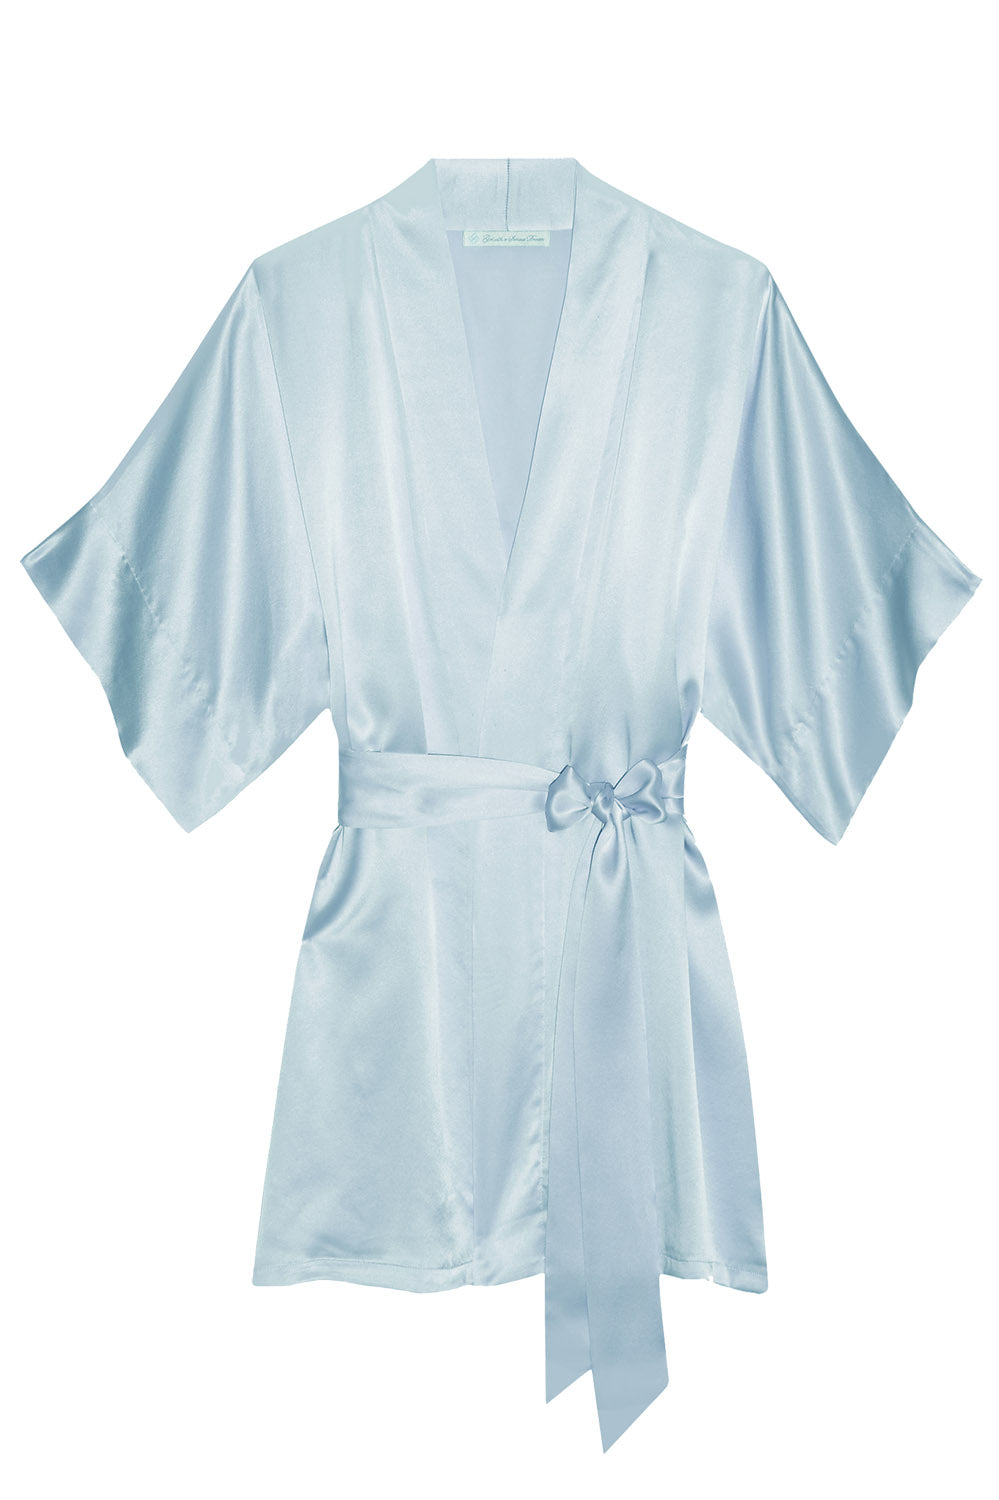 Samantha bridal silk kimono robe bridesmaids robes in Something blue - style 300